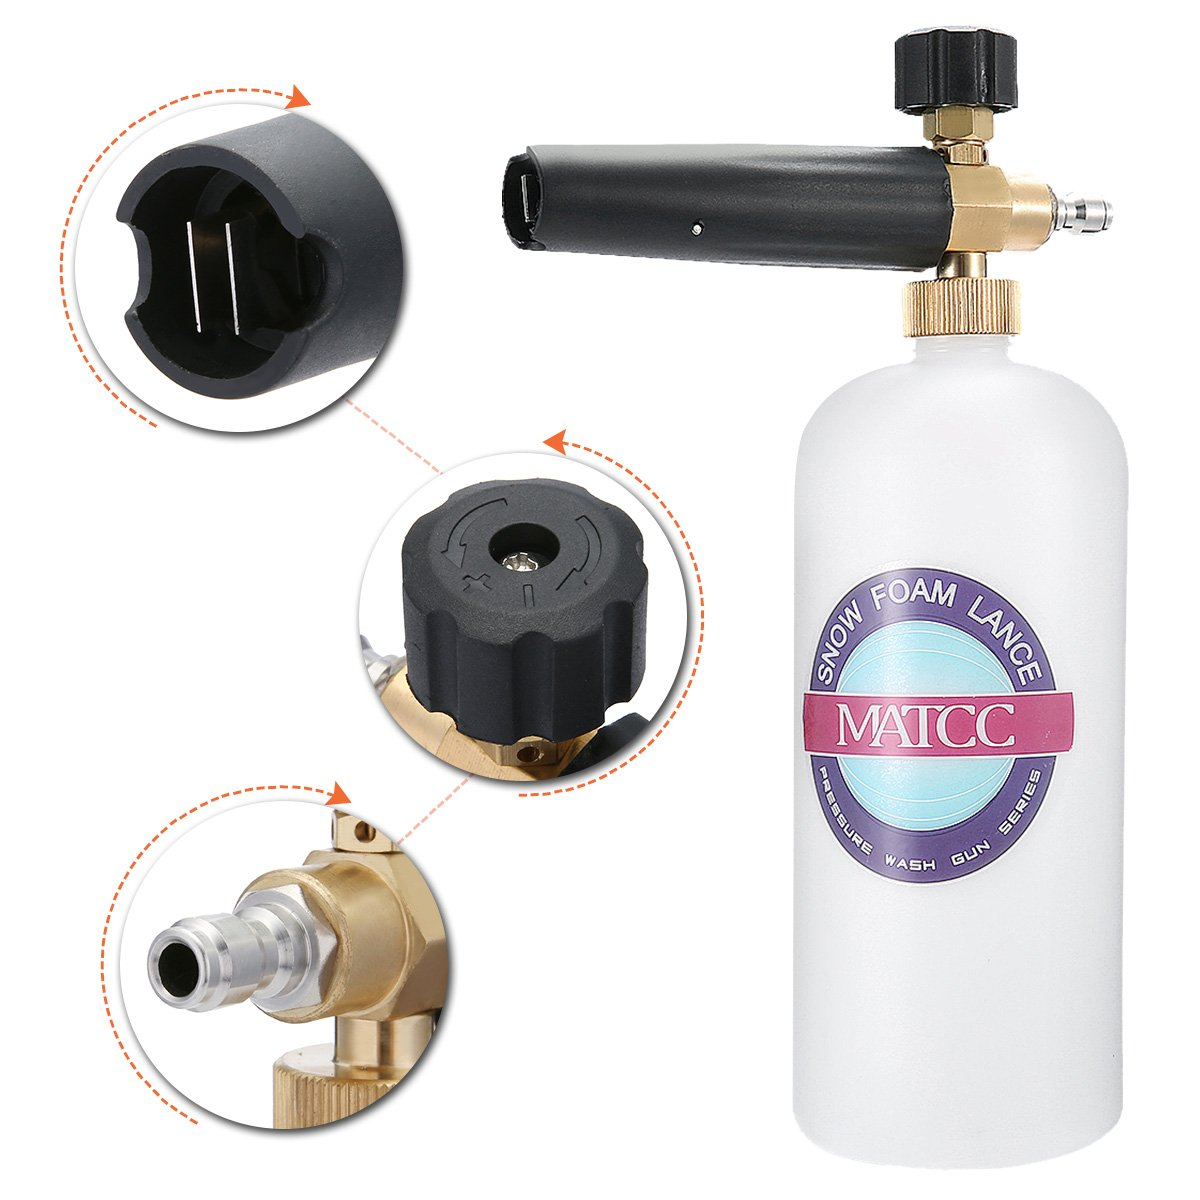 MATCC Adjustable Foam Cannon I Liter Bottle Snow Foam Lance With 1/4'' Quick Connector Foam Blaster for Pressure Washer Gun by MATCC (Image #3)